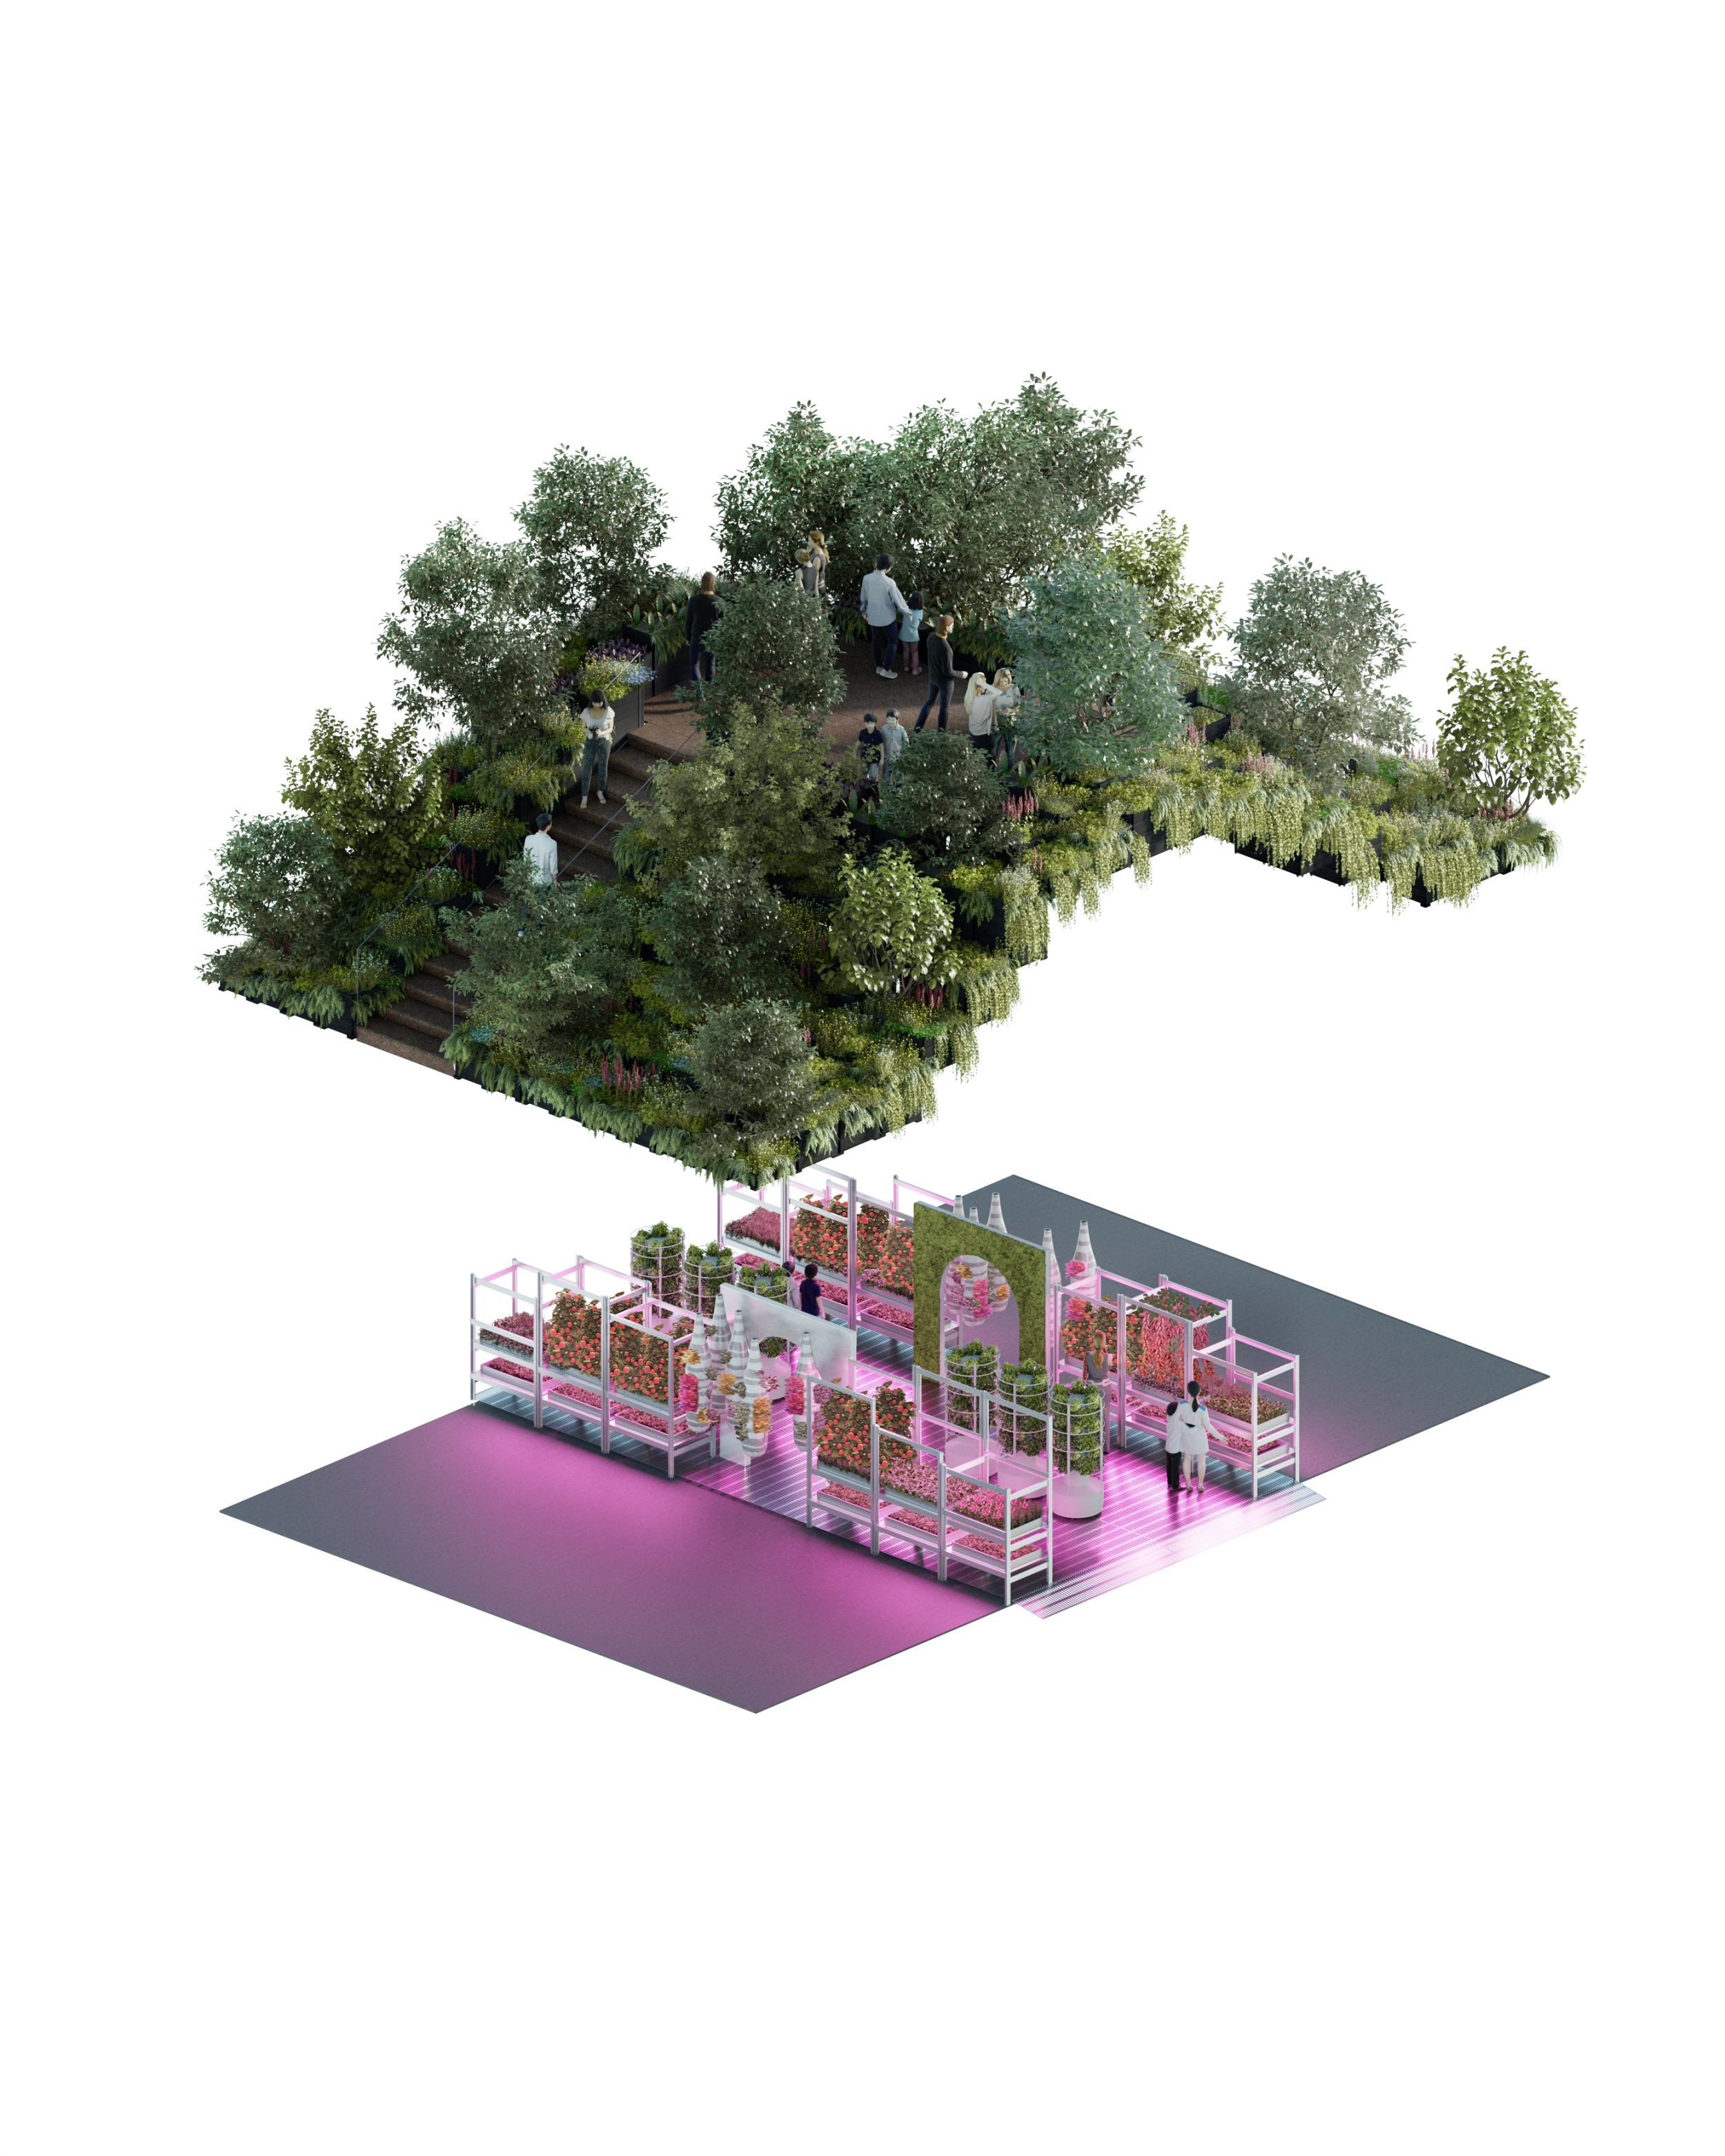 A rendering of the concept garden.